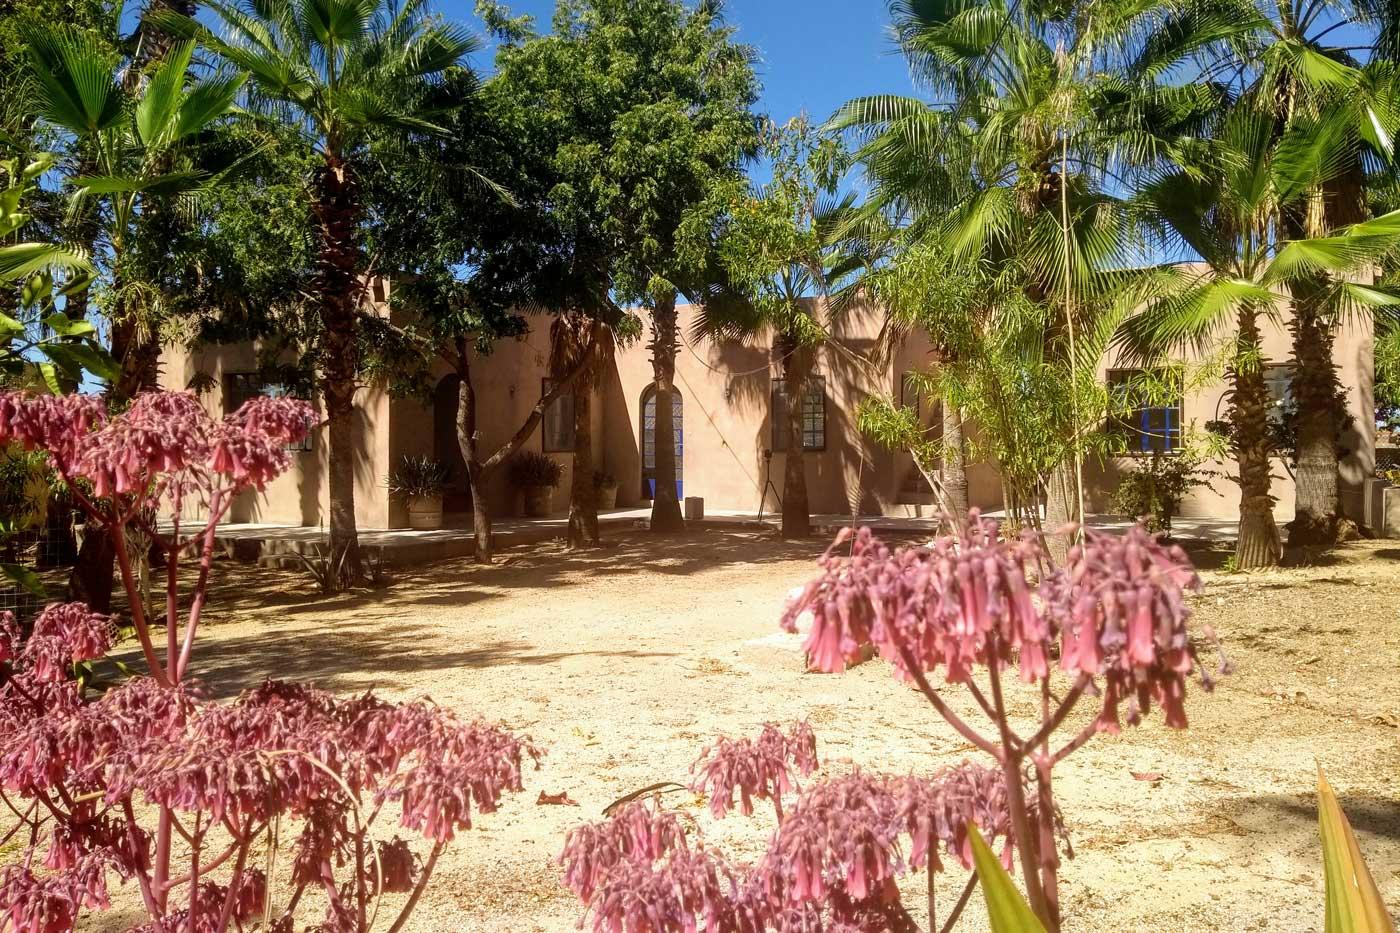 Pacific, 2 Bedrooms Bedrooms, ,2 BathroomsBathrooms,House,For Sale,Calle sin Nombre,19-454